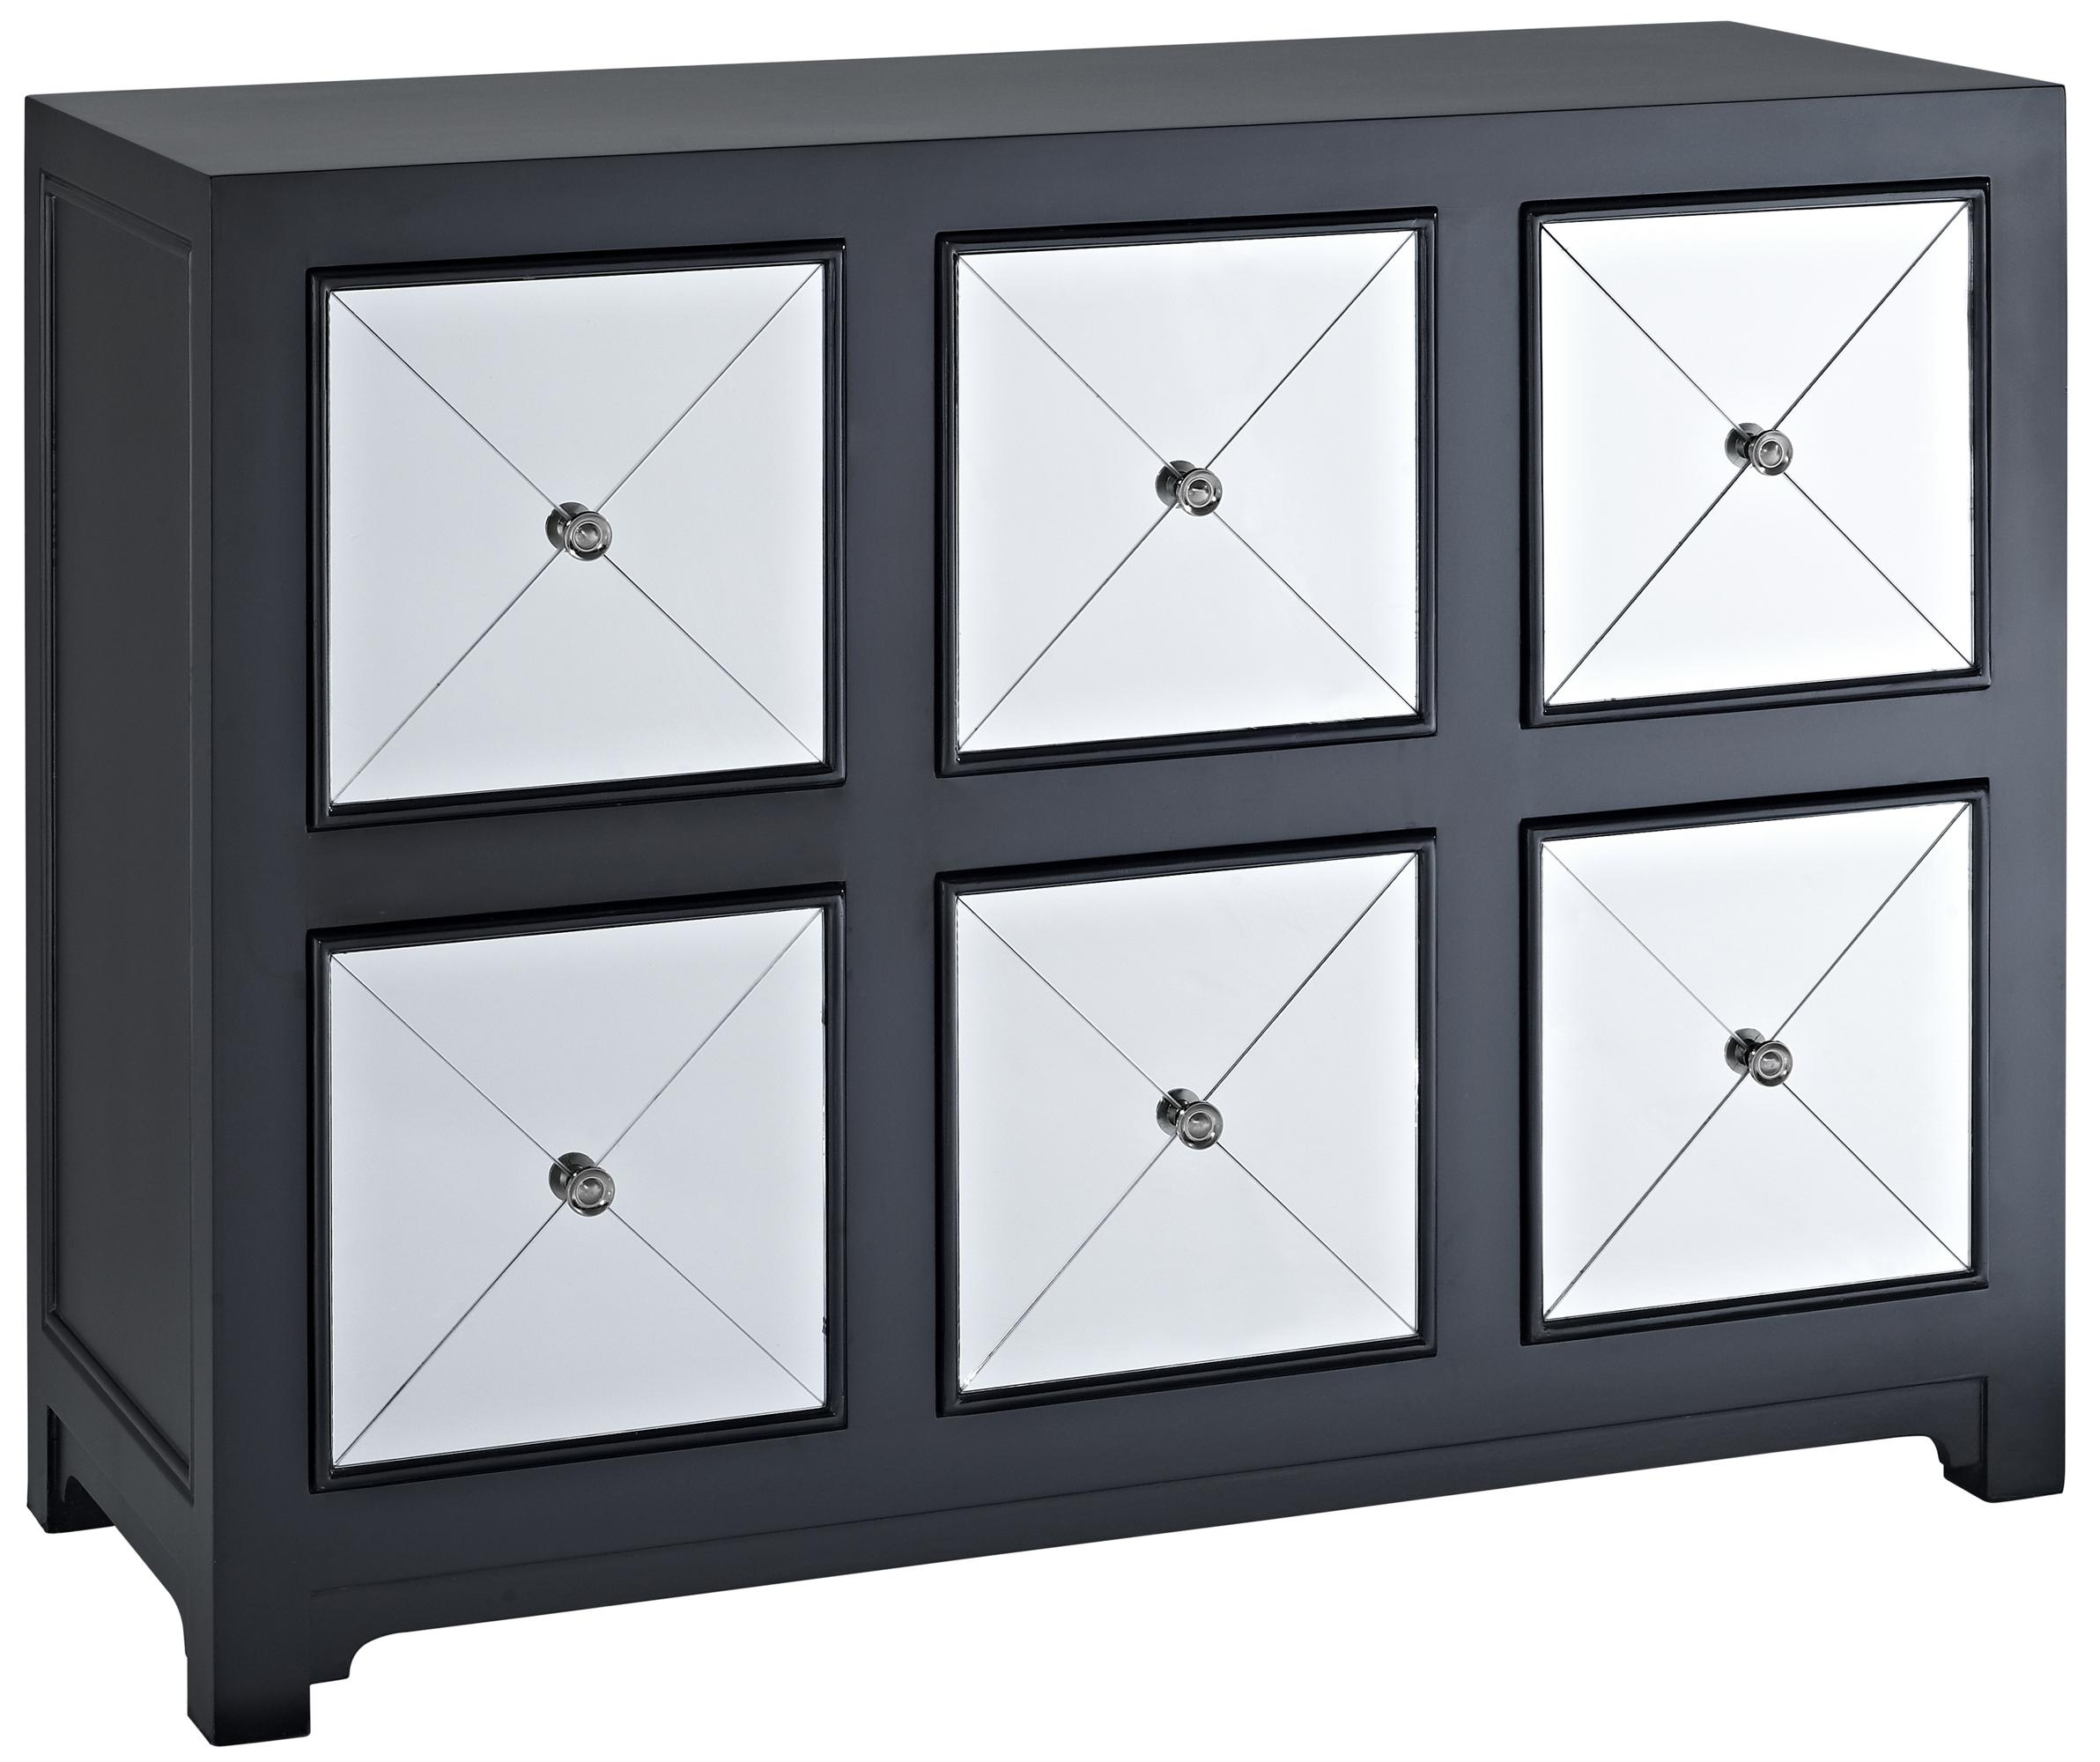 Powell Accents Mirrored Wood Console - Item Number: 233-660